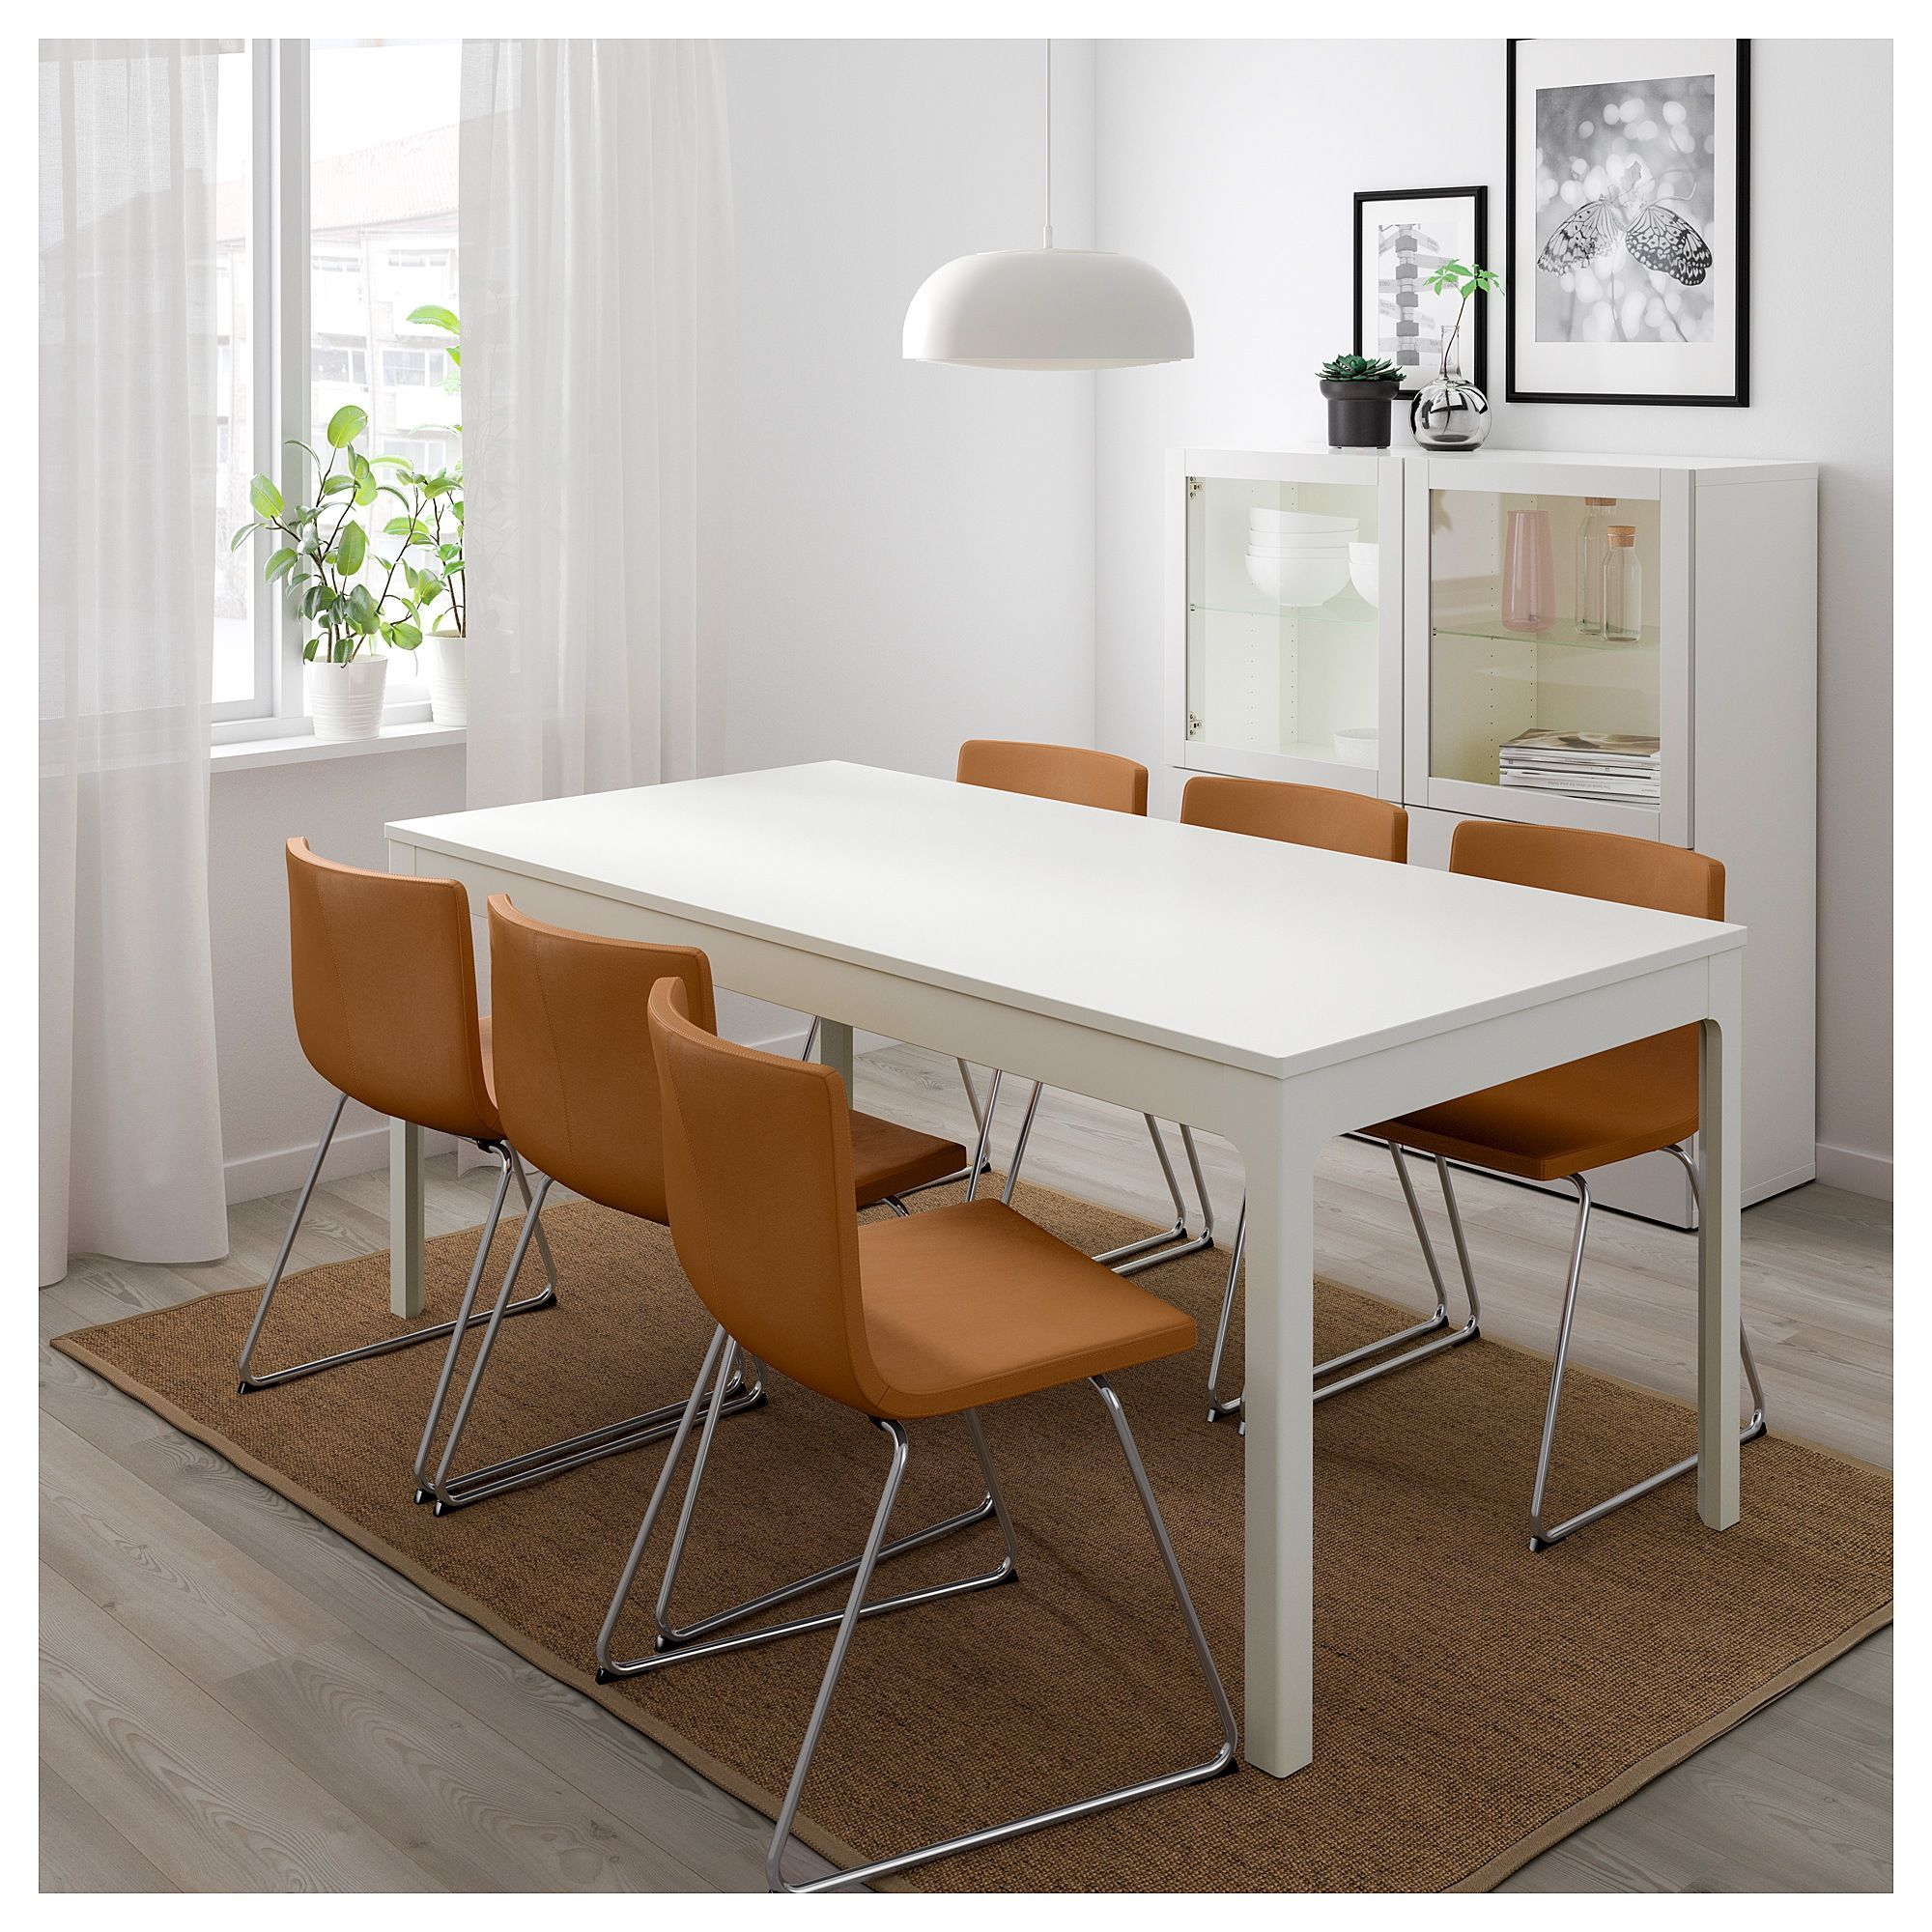 Ekedalen Bernhard Table And 6 Chairs White Mjuk Golden Brown 70 7 8 94 1 2 180 240 Cm Weisse Stuhle Ausziehtisch Haus Deko